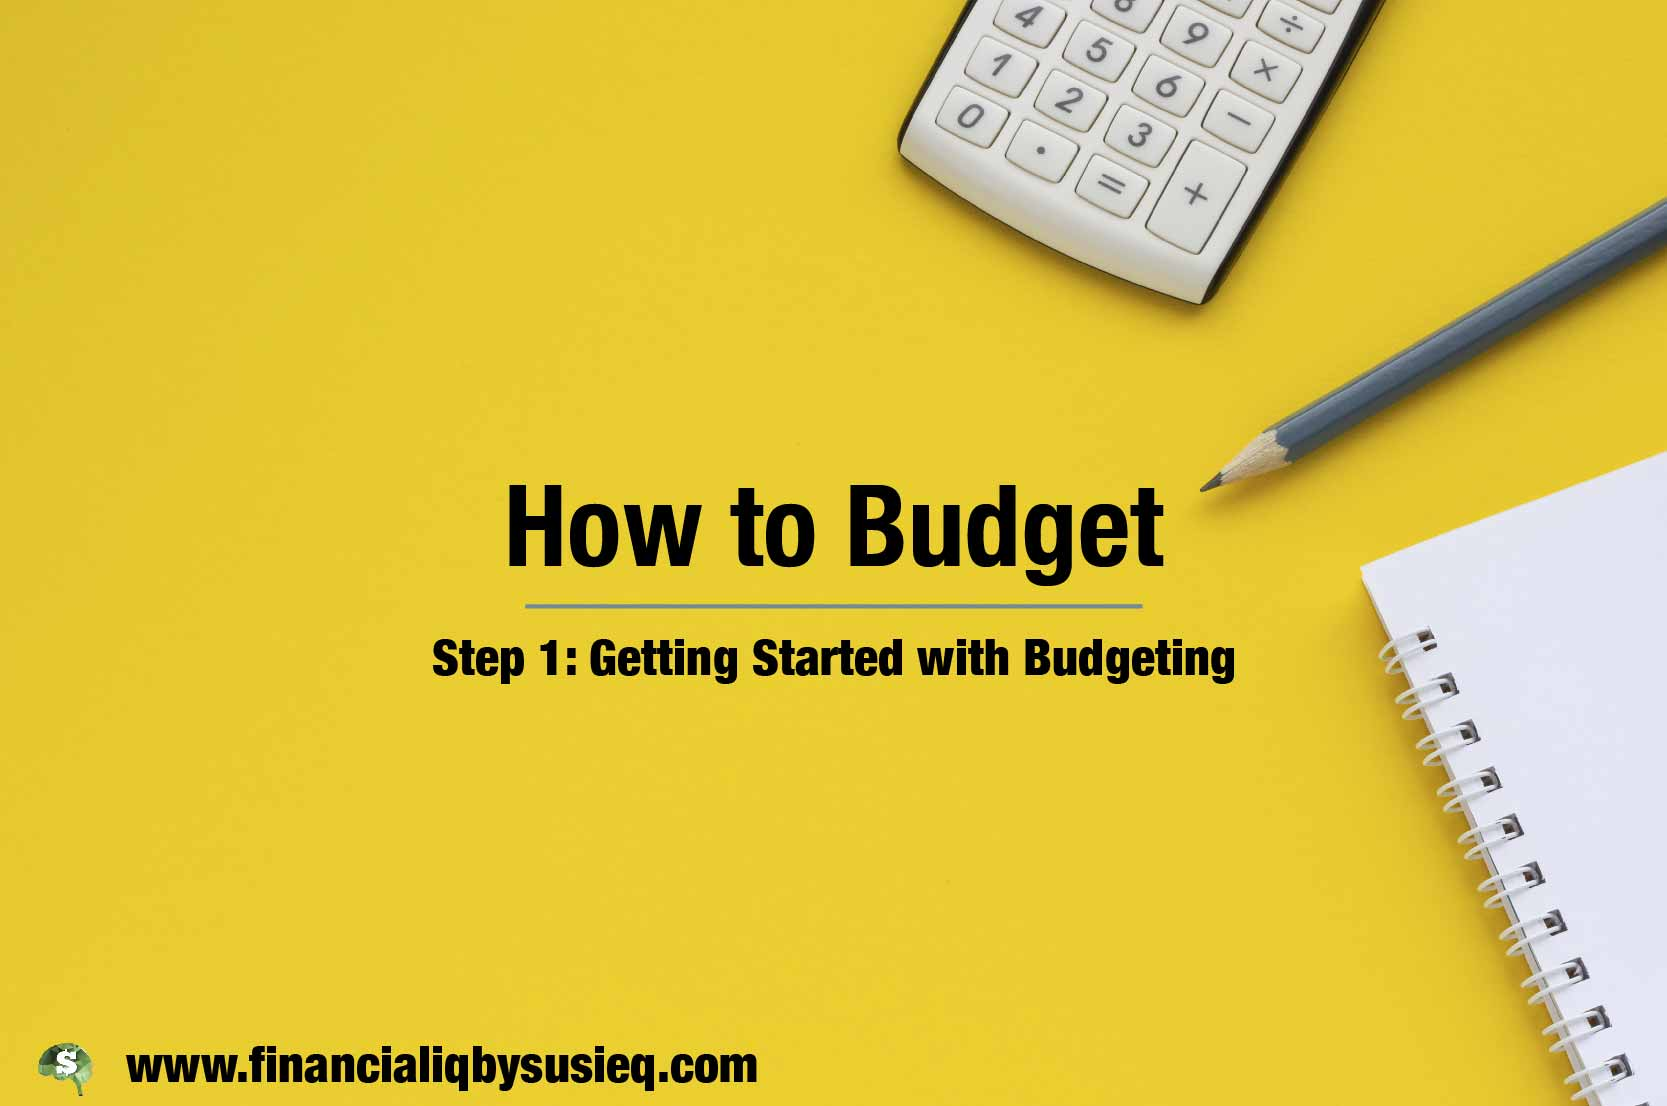 Getting Started with Budgeting